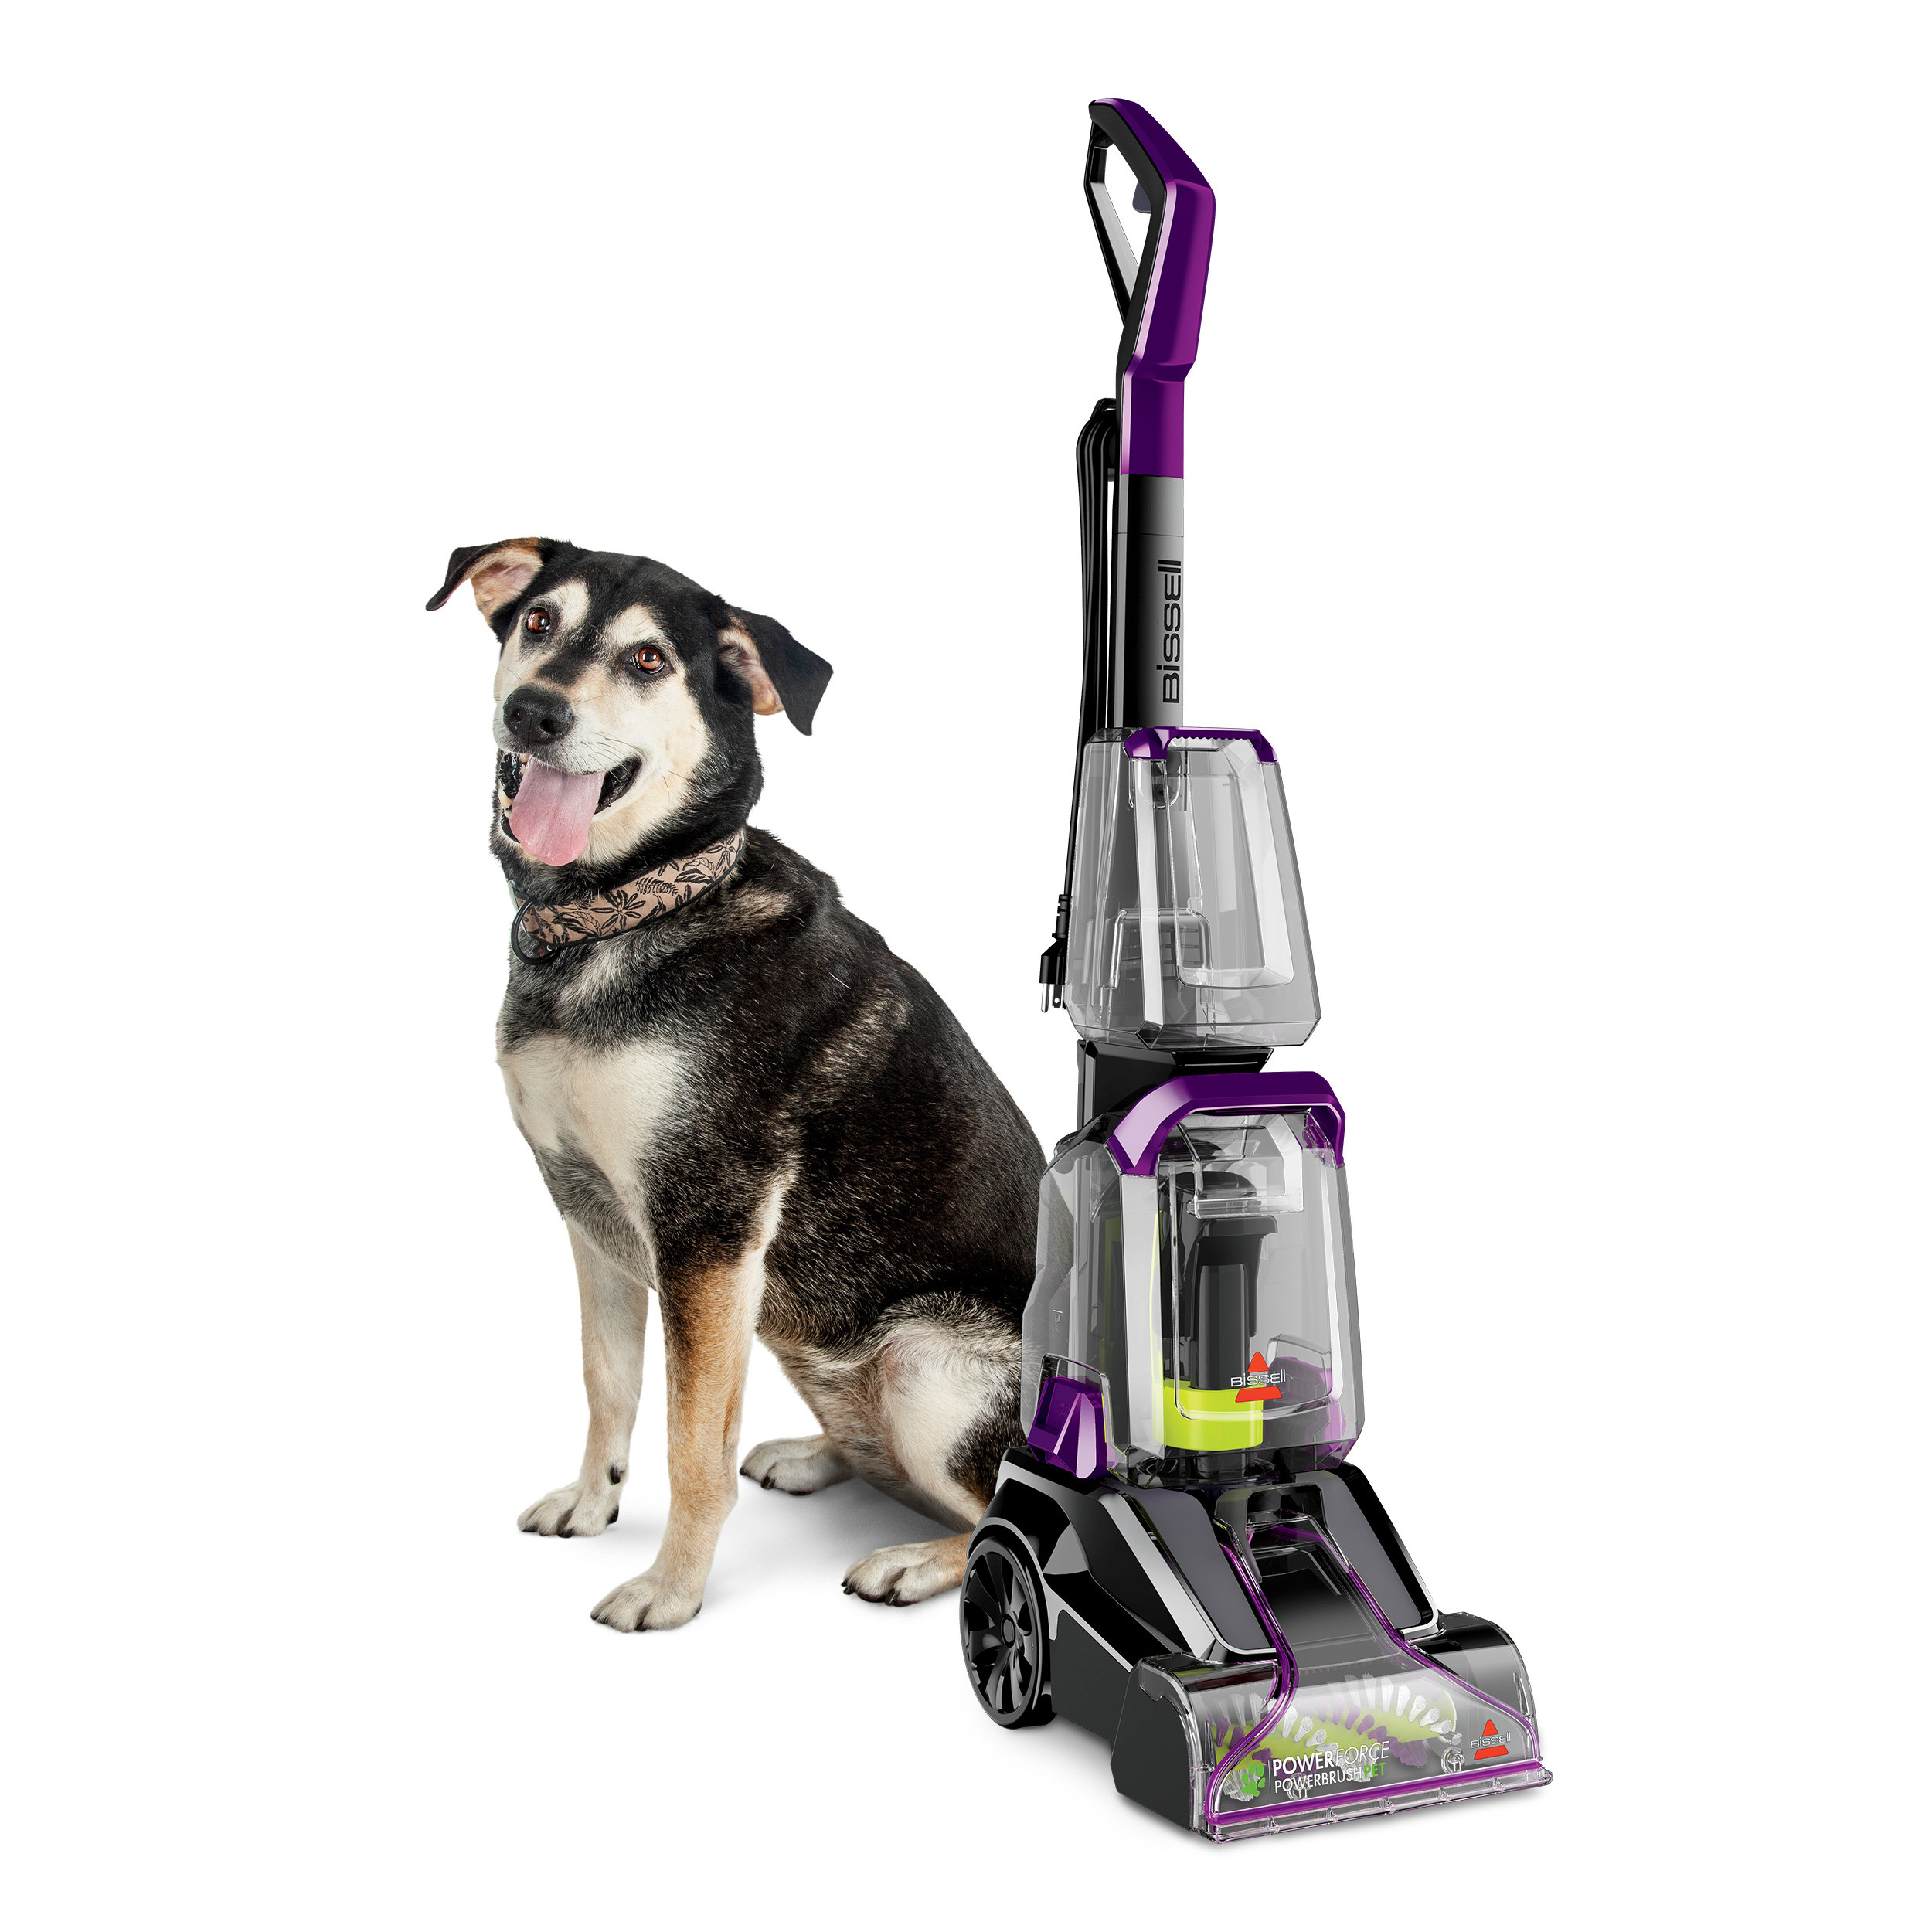 The pet carpet washer shown next to smiling medium-sized brown and white dog